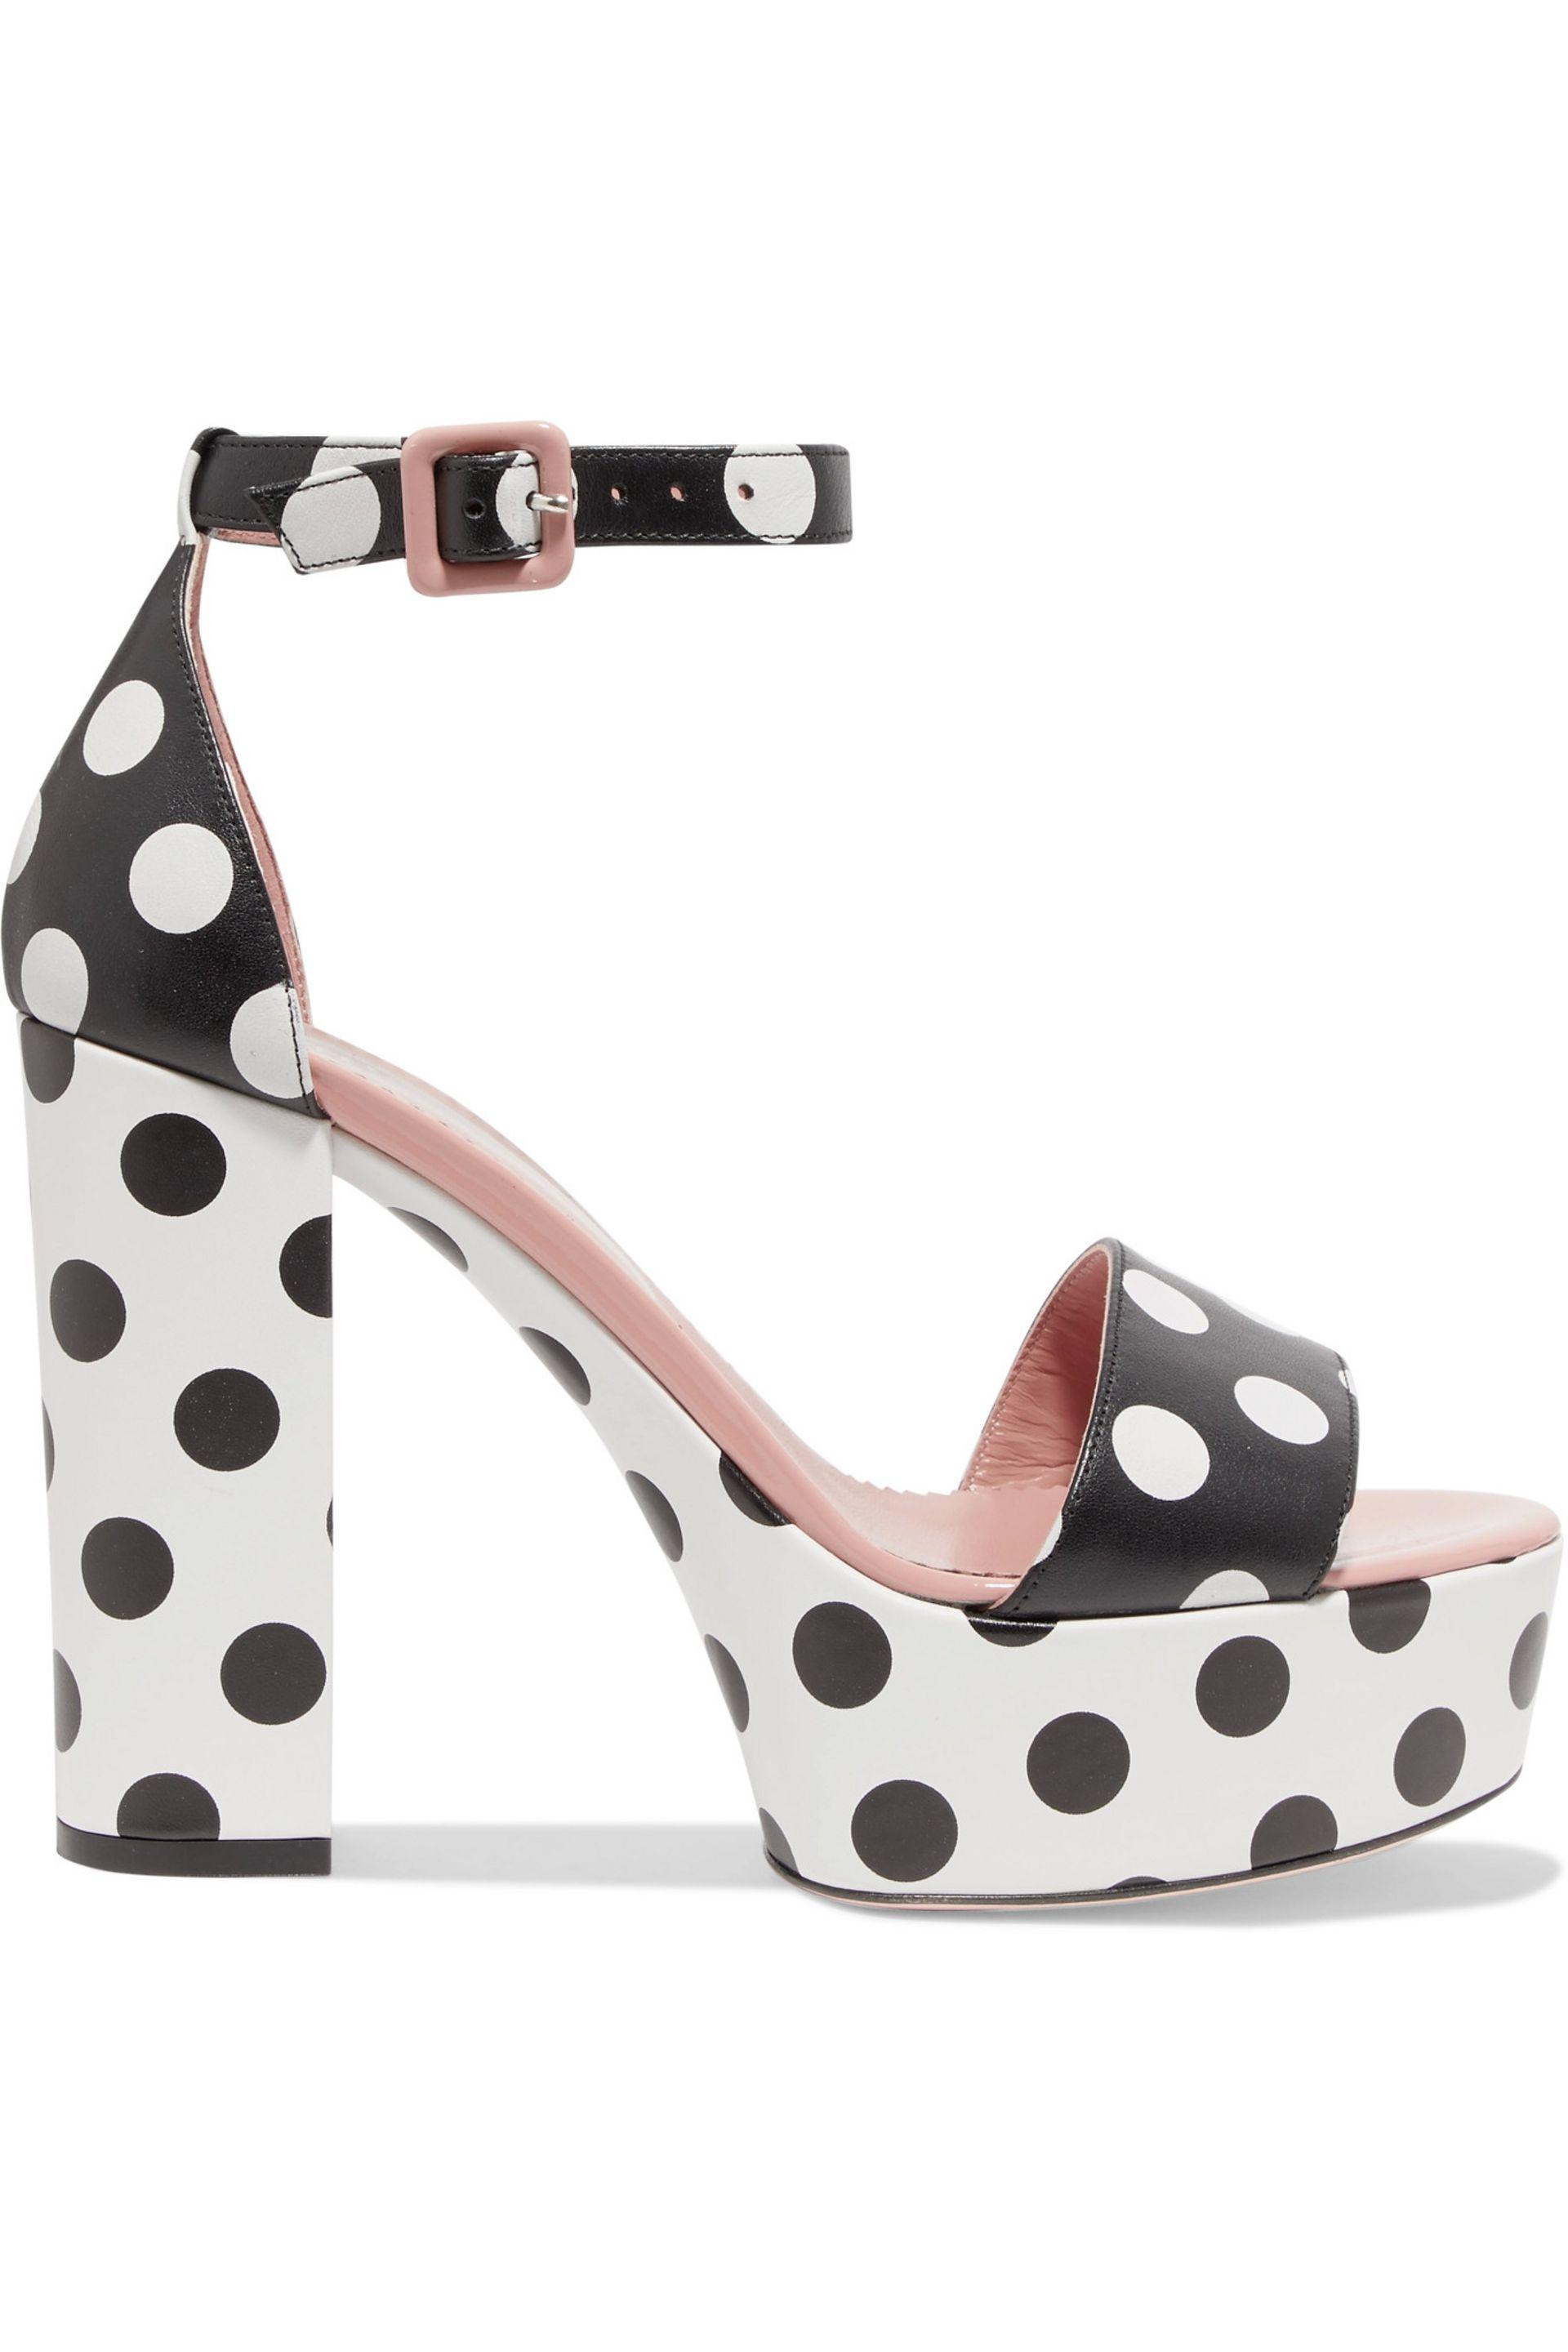 80ca545d26e Red Valentino Polka-dot Leather Platform Sandals in Black - Lyst